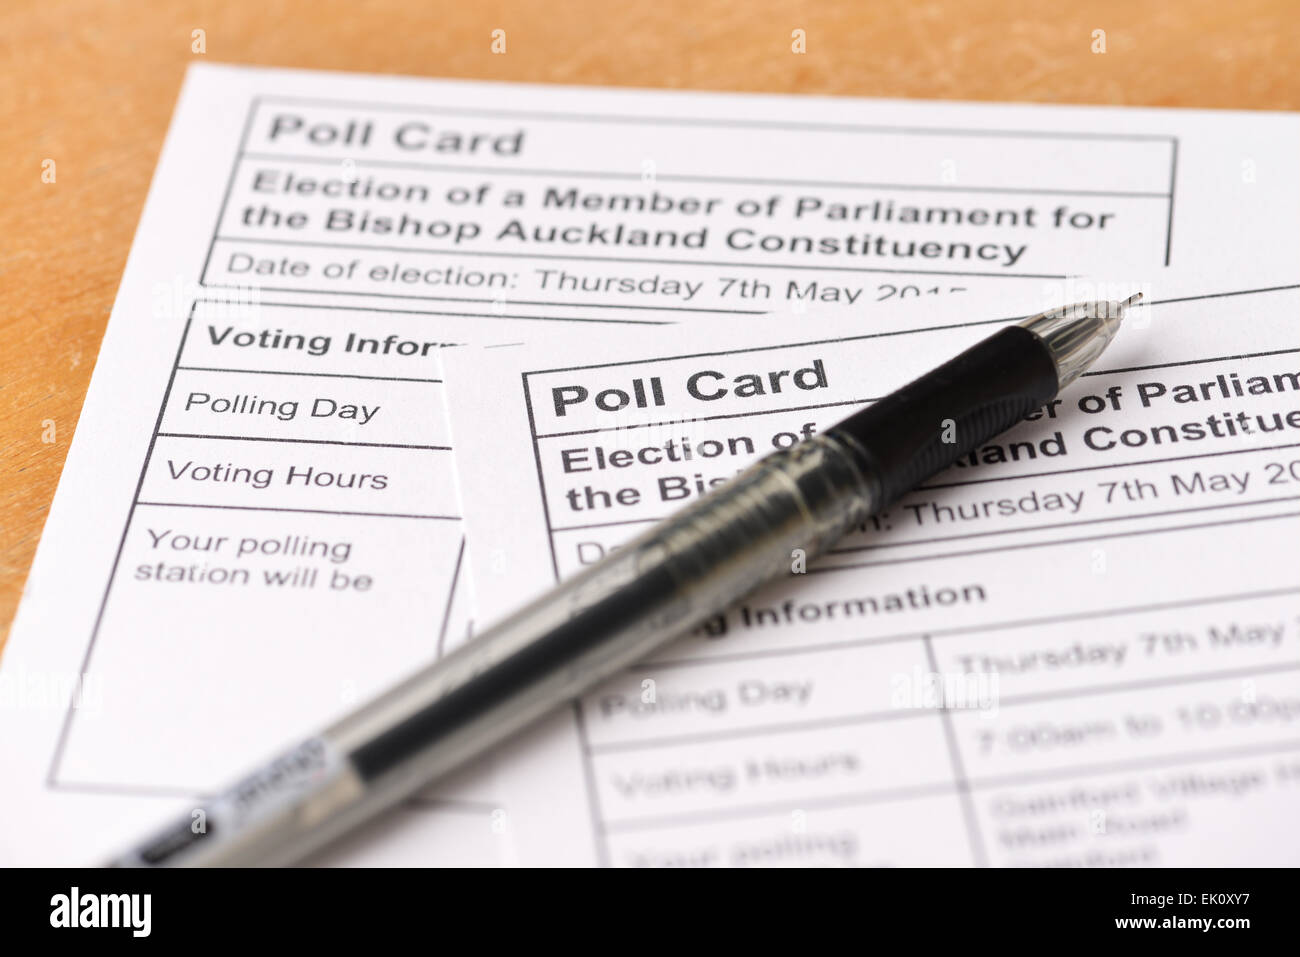 Polling cards for the UK General Election in May 2015 - Stock Image